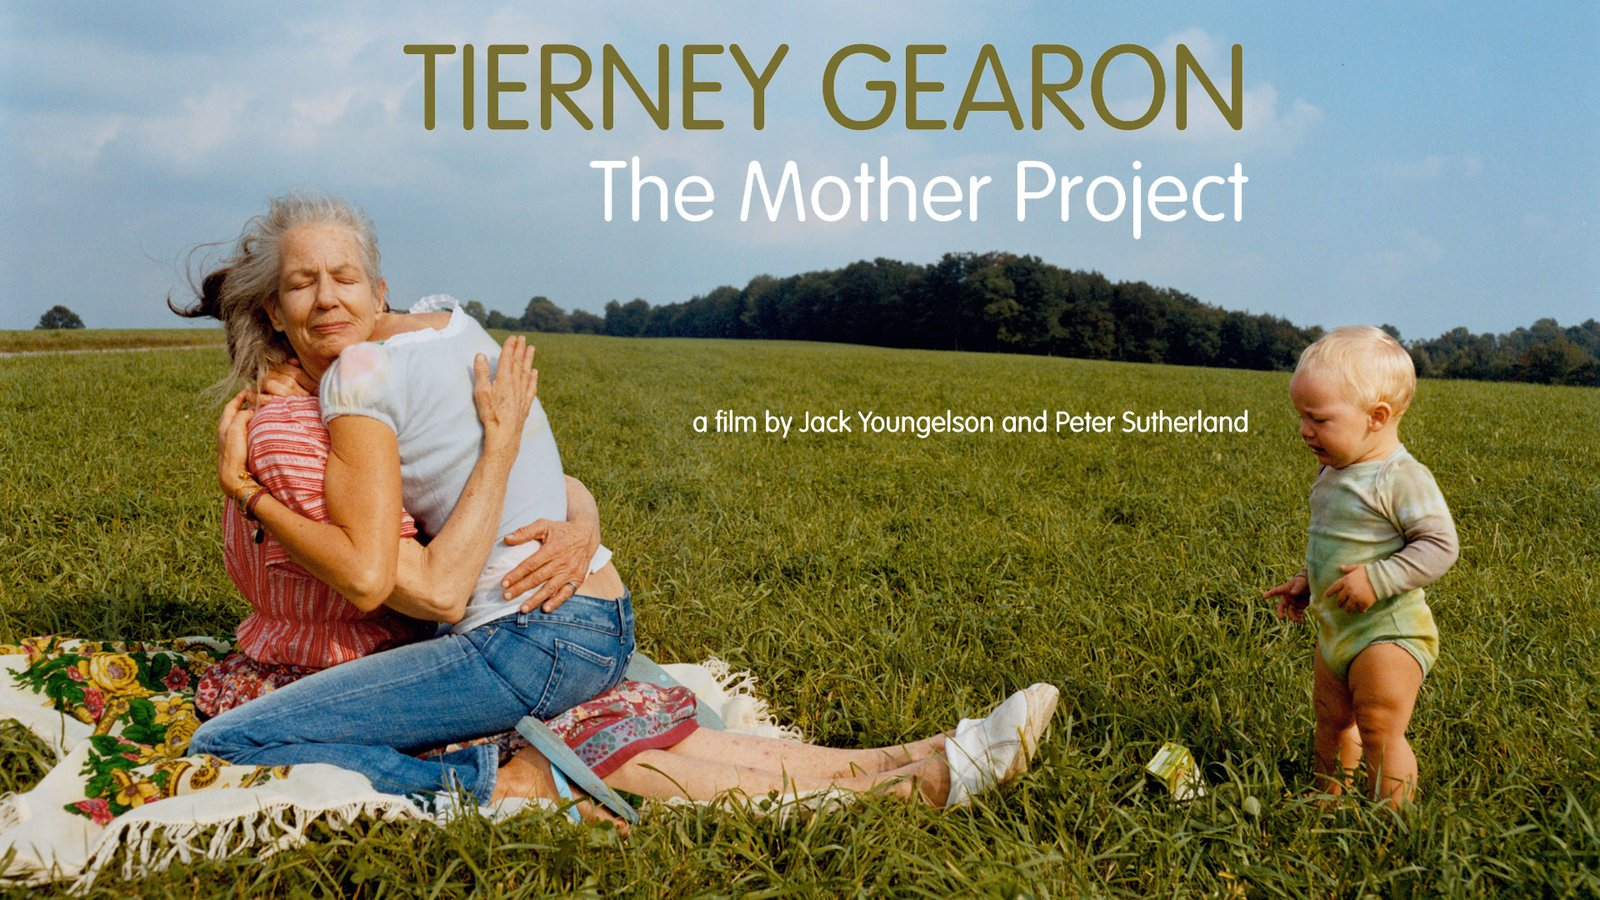 Tierney Gearon: The Mother Project - A Controversial Photographer and Her Relationship with Art and Family